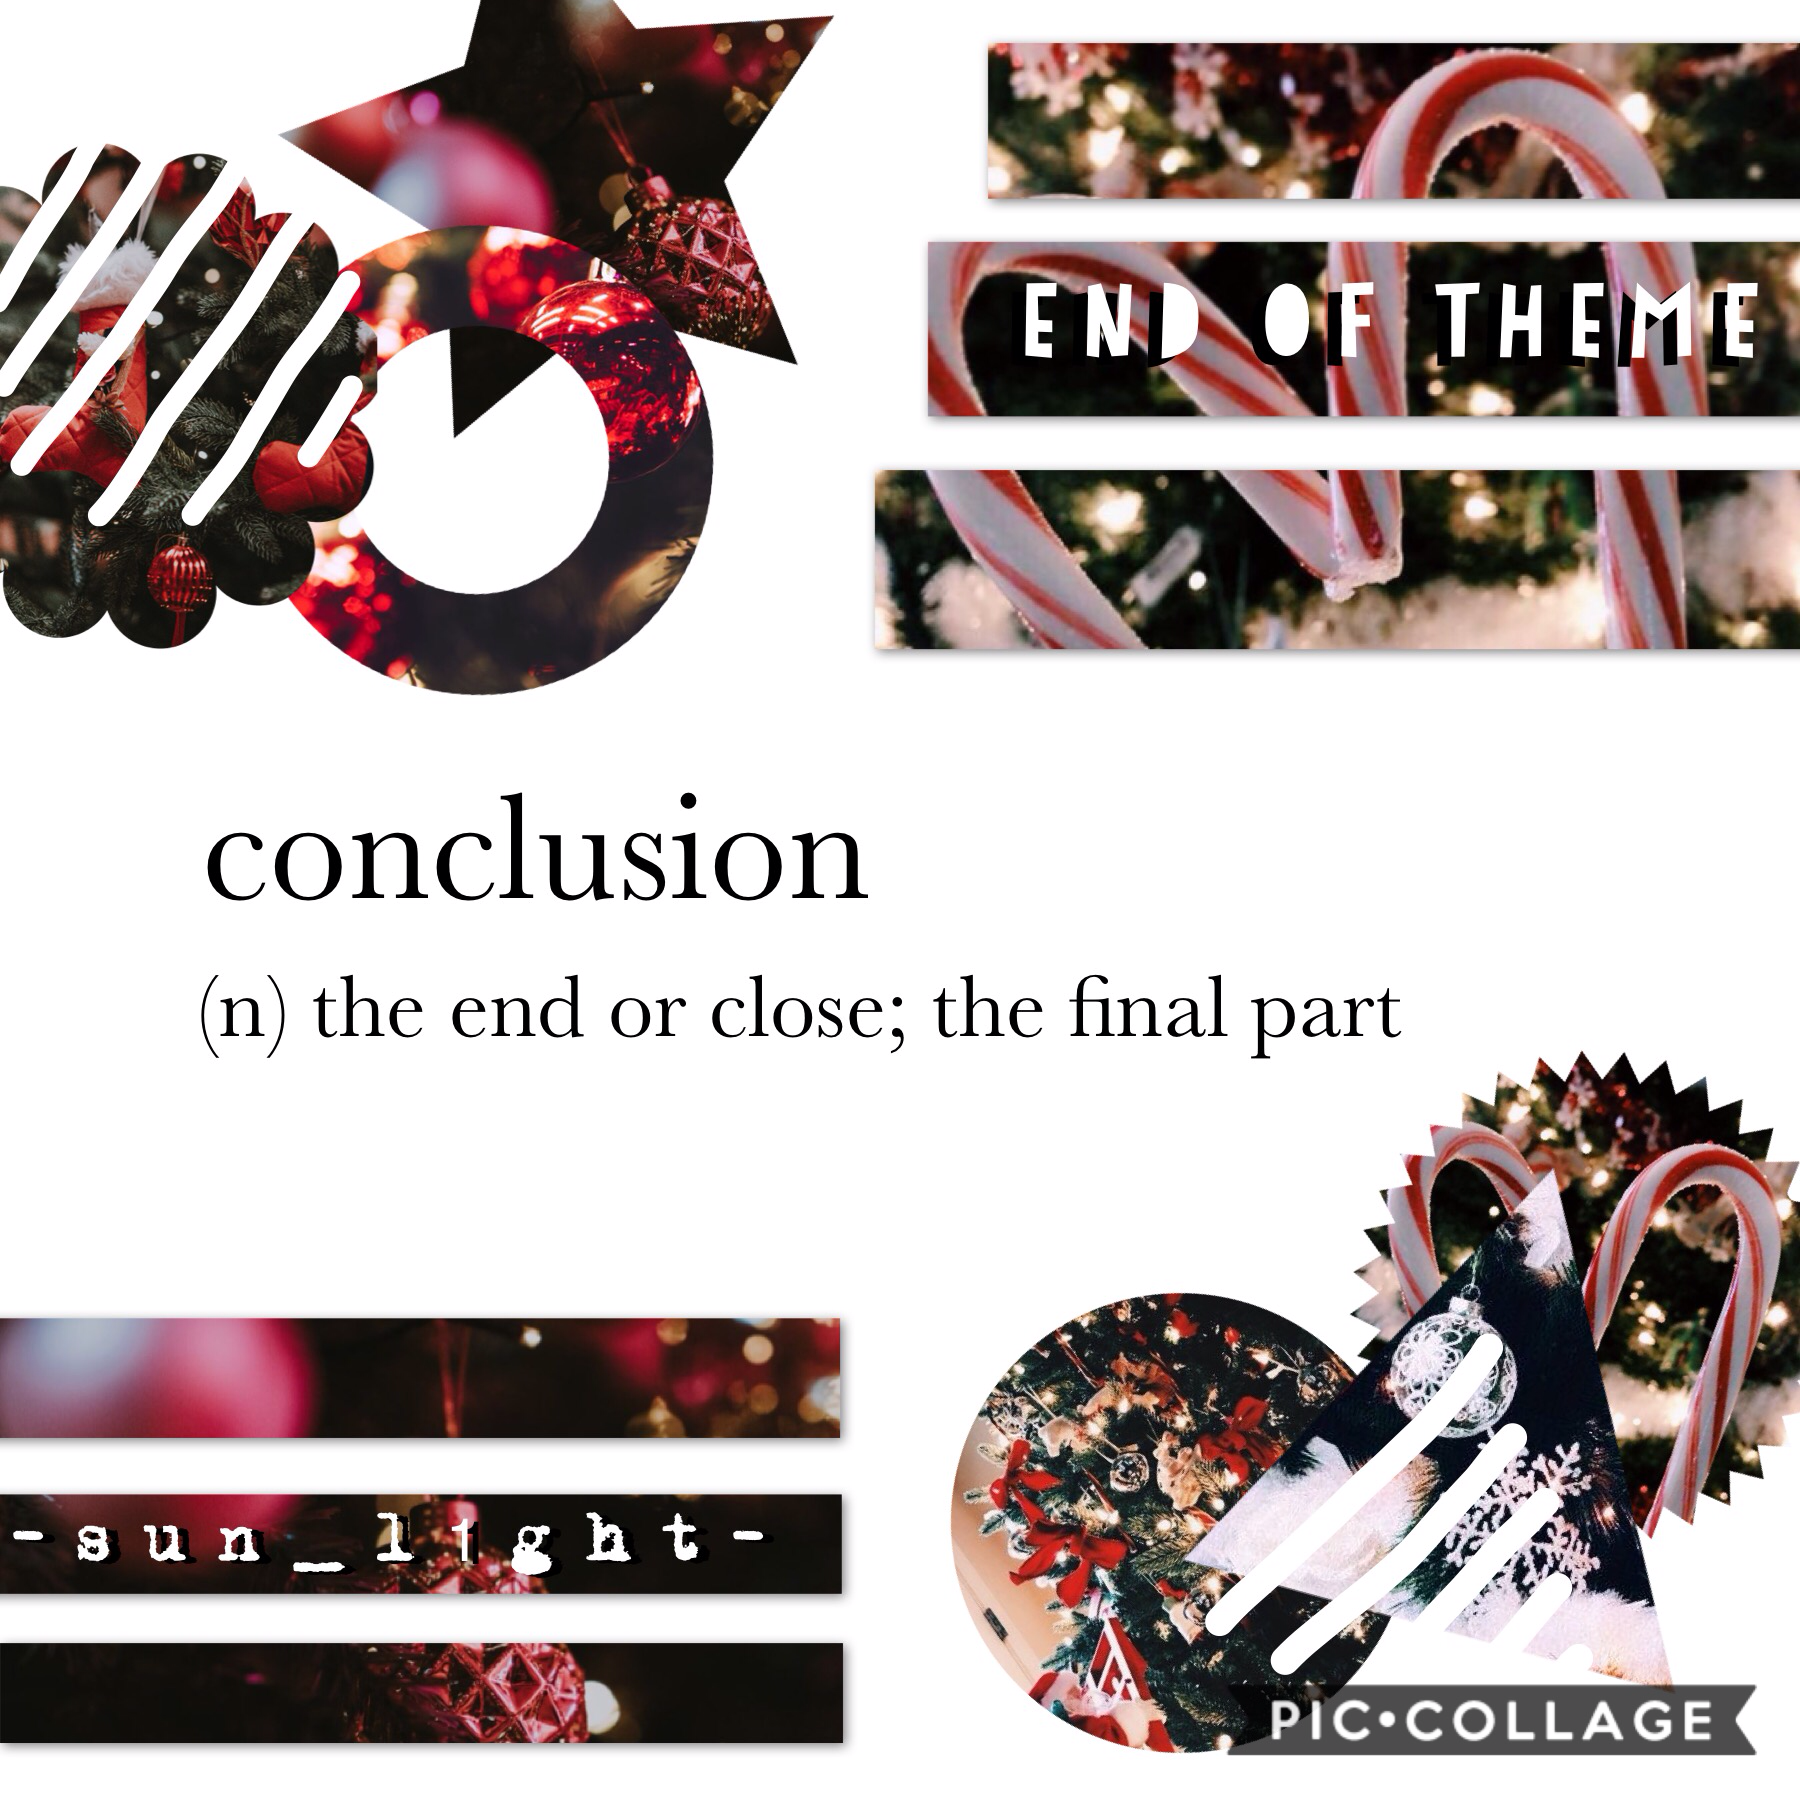 hit the star --> ⭐️ I'm sad to say, it's the end of this theme! I wanted to end off festive as Christmas draws closer, which leads to the Christmas countdown and lots of new festive collages coming up soon! talk later! ✨🎄 20/12/19 💞 m e l